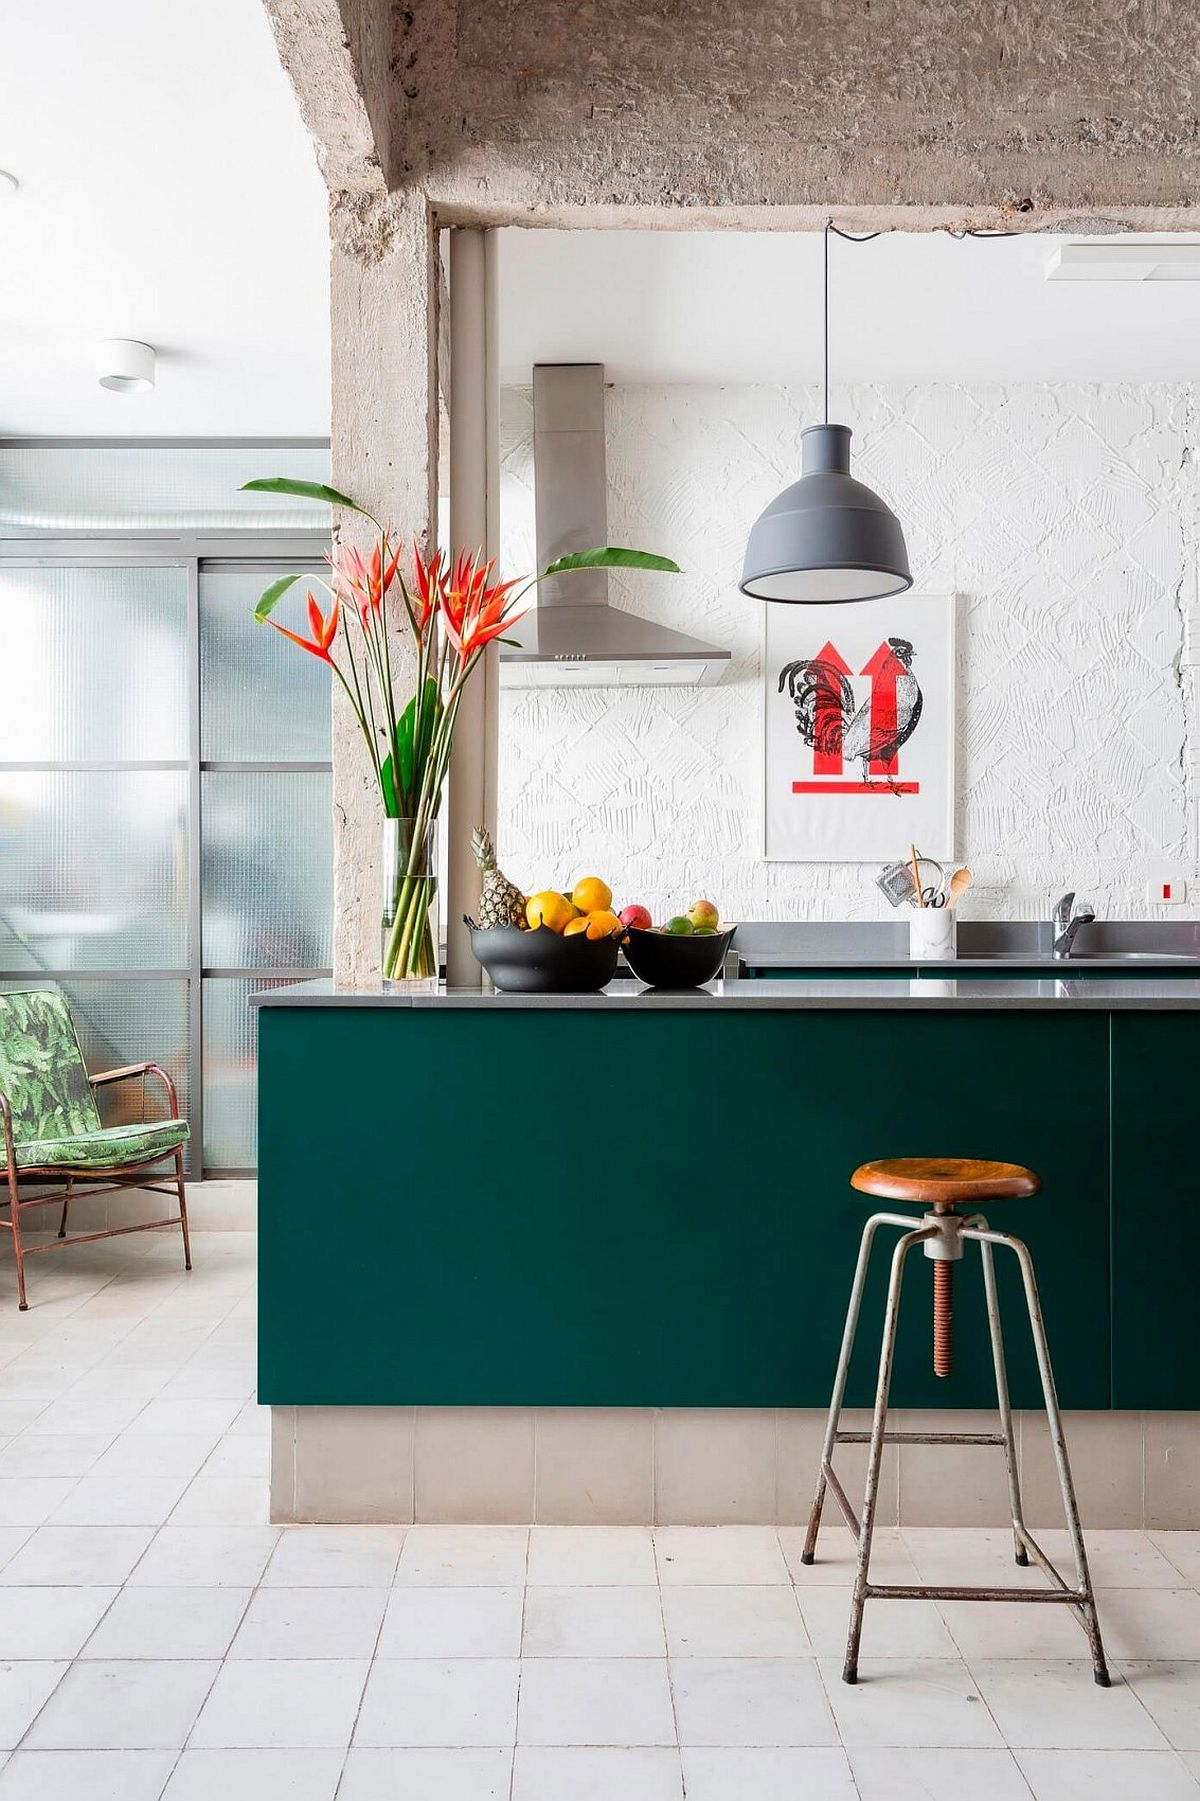 Exposed cement beams, textured kitchen backsplash and a colorful kitchen island for the Sao Paulo home